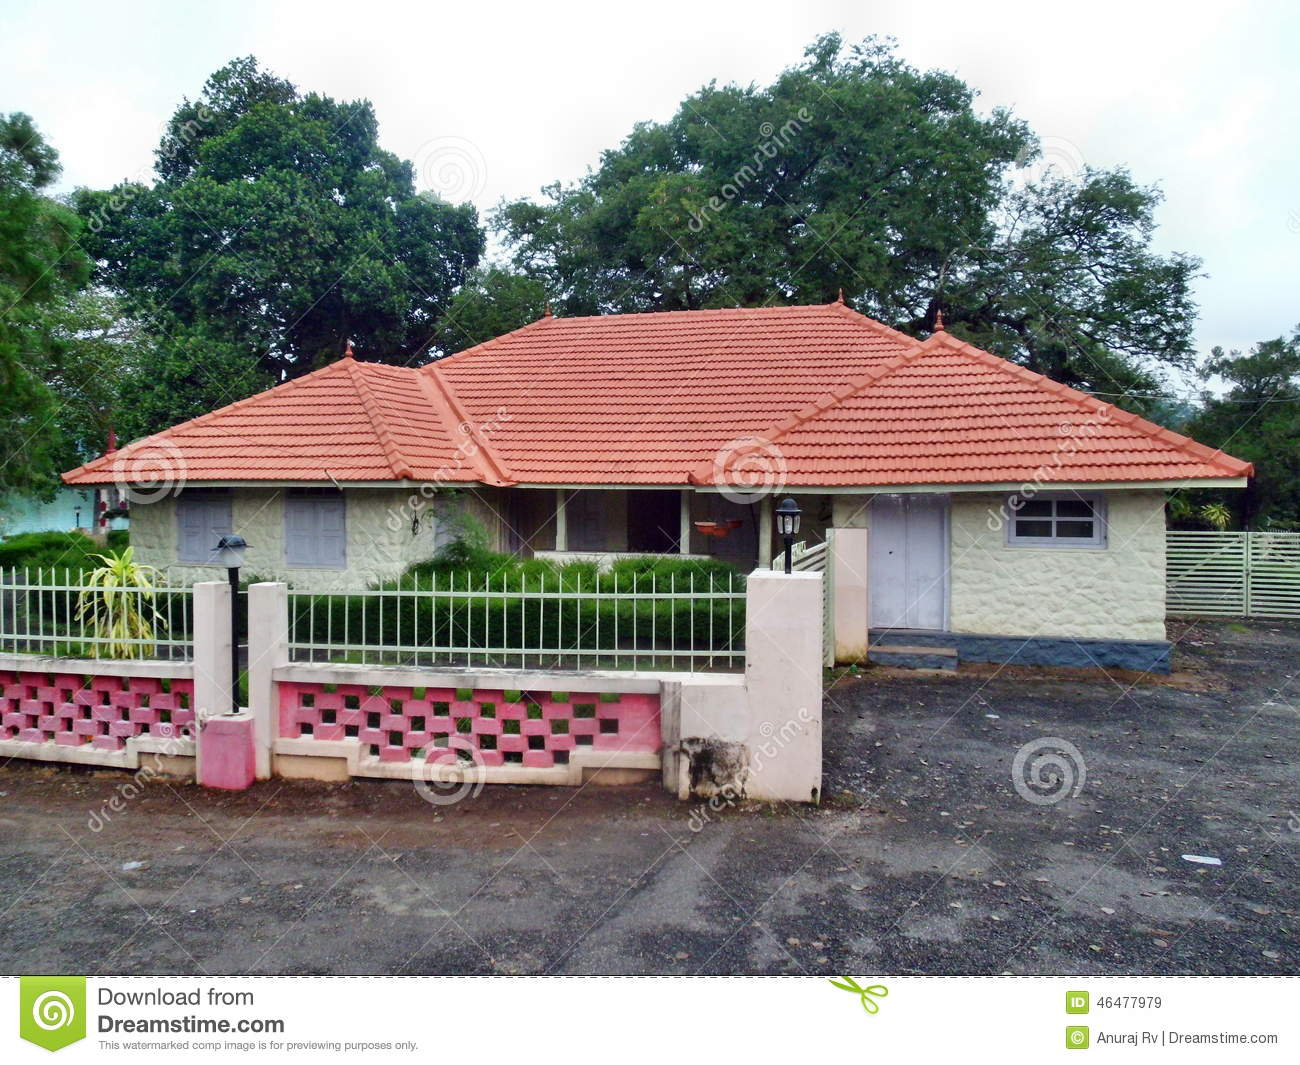 Kerala model house stock image image of building road for Traditional house plans in kerala